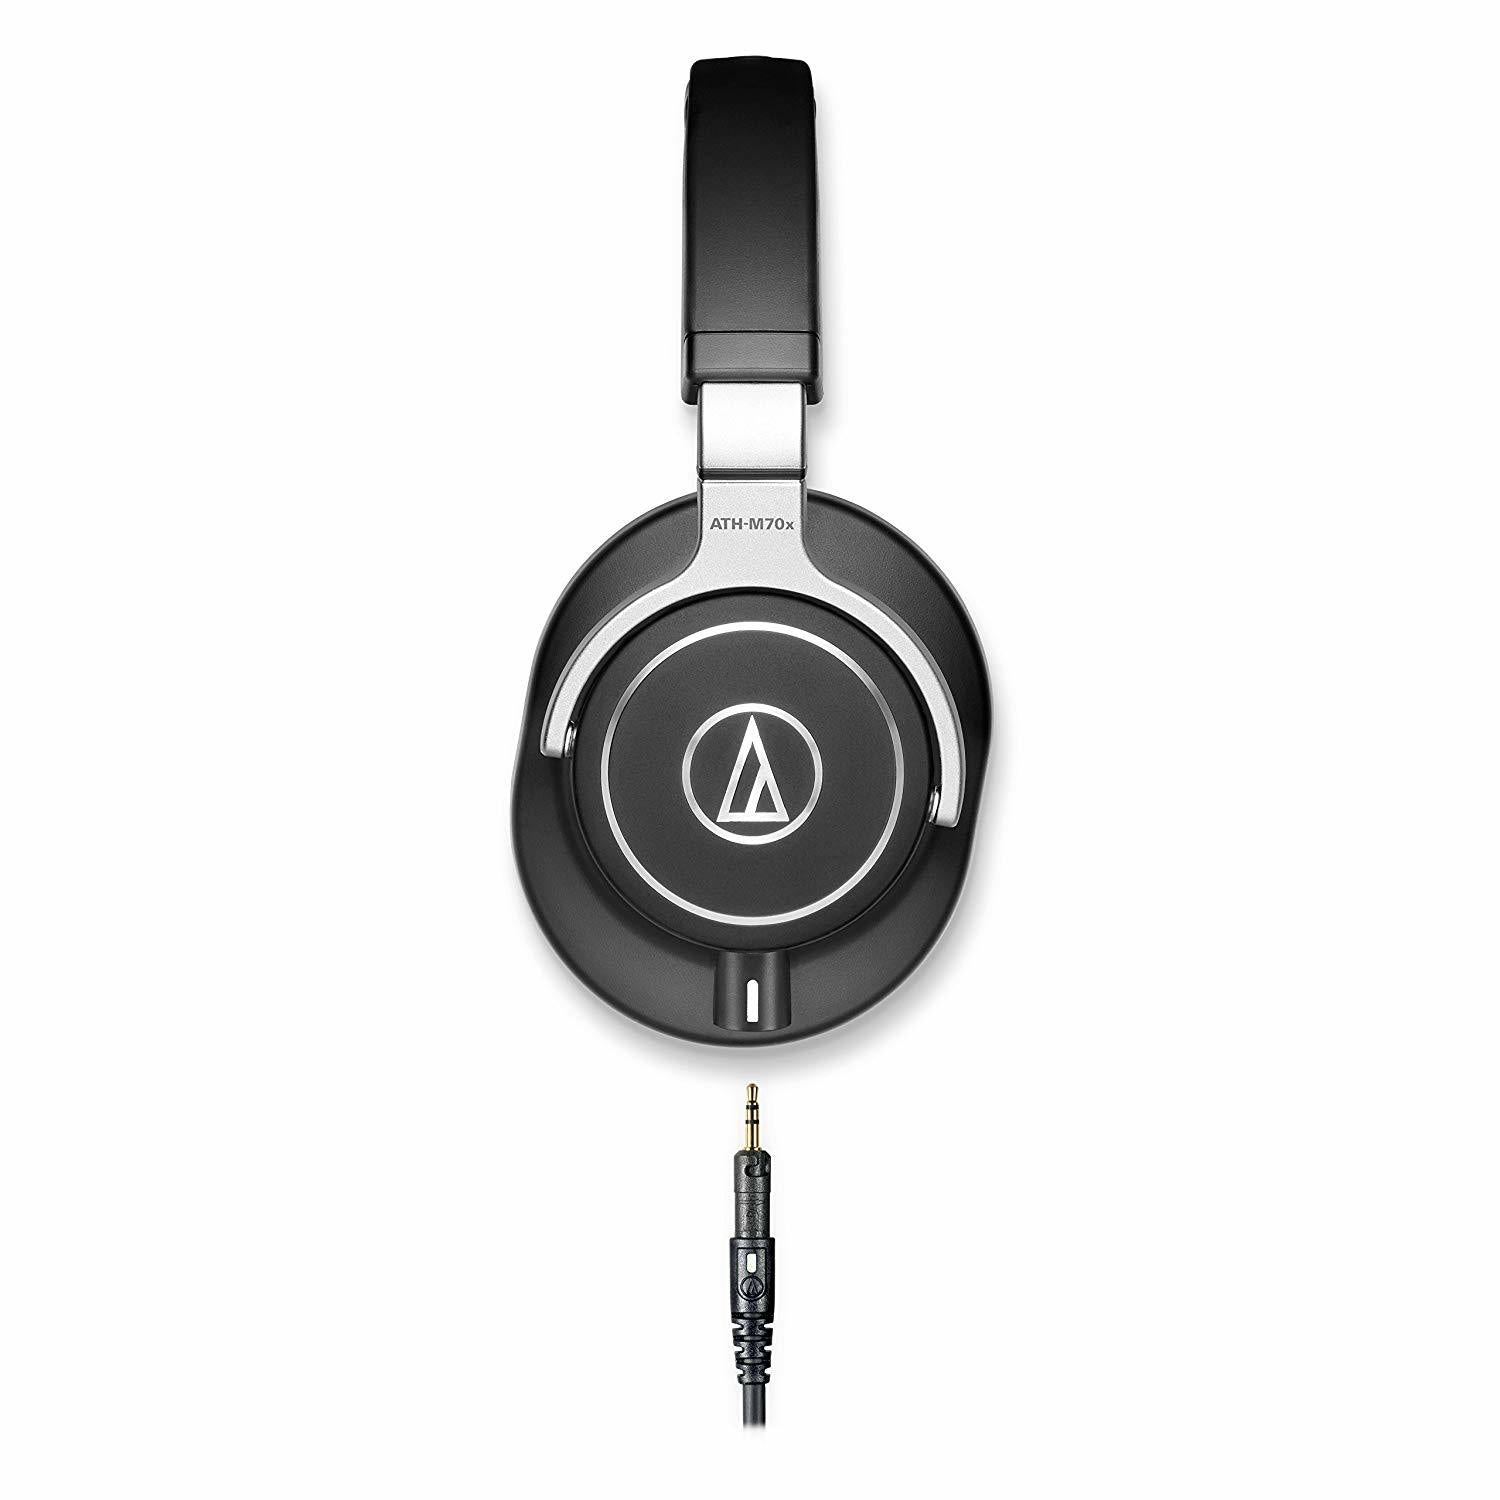 Audio-Technica ATH-M70x Closed-Back Dynamic Professional Studio Monitor Headphones